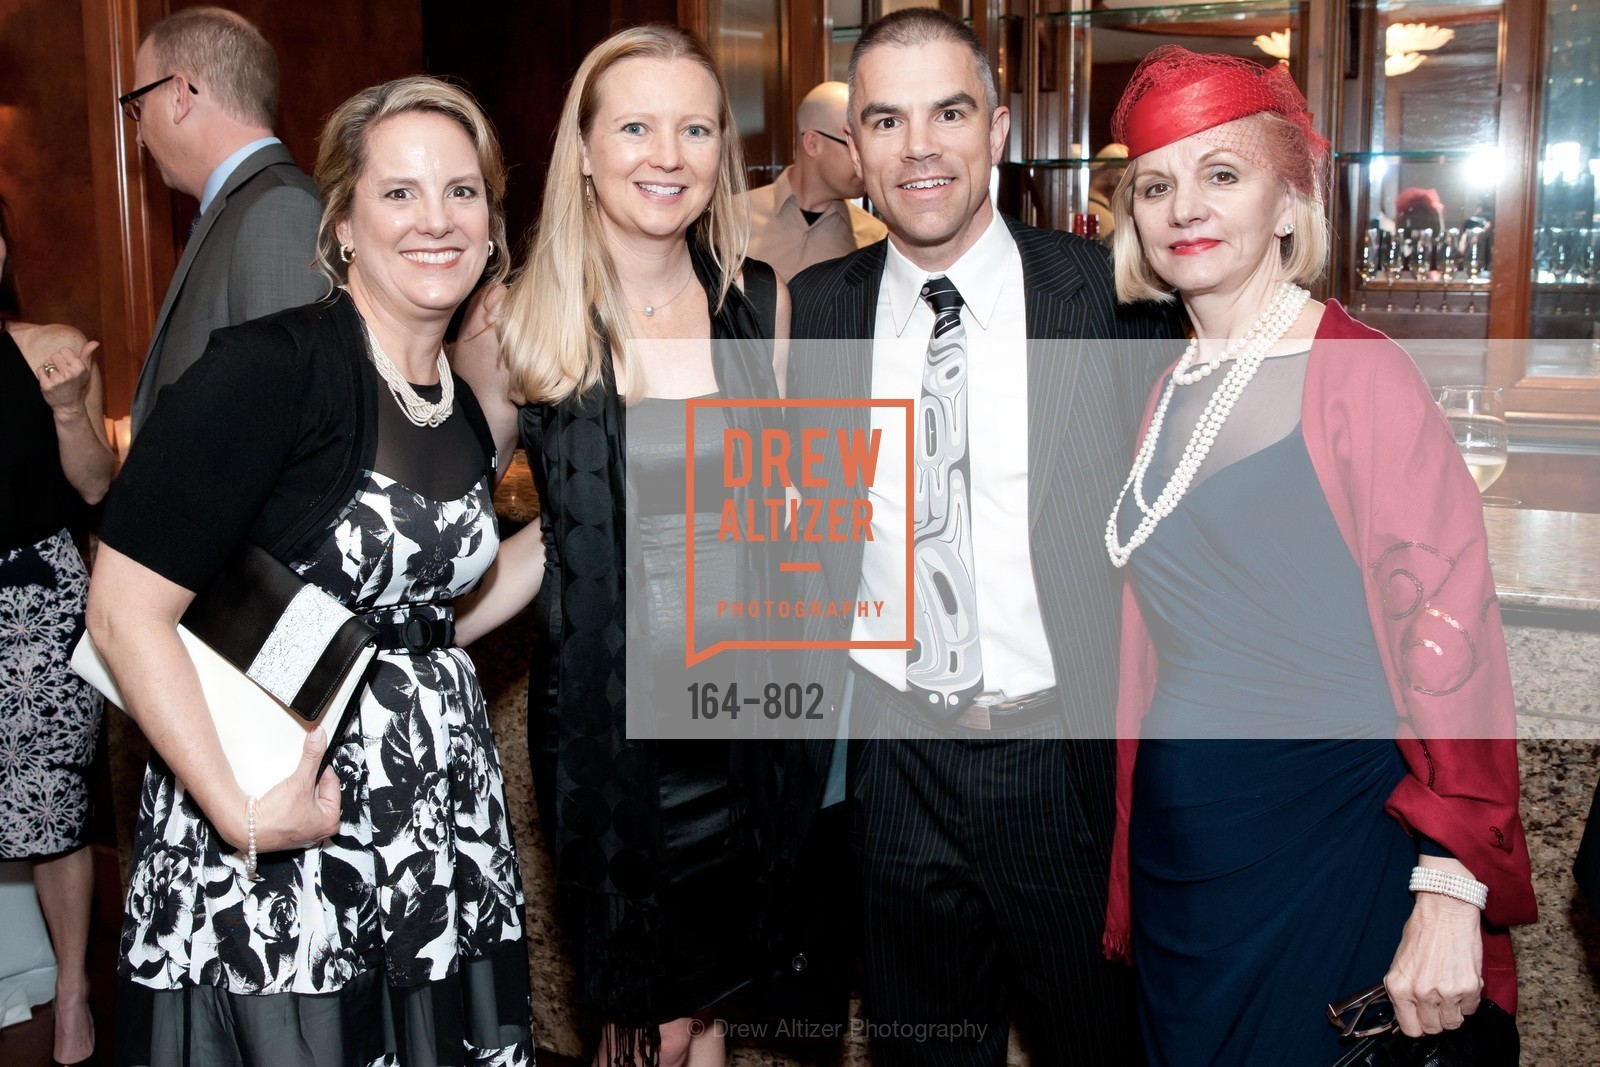 Dawn Kruger, Nicole Pitts, Wade Pitts, Margy Johnson, MR PORTER Celebrate The San Francisco Issue of The Journal, US, April 23rd, 2015,Drew Altizer, Drew Altizer Photography, full-service agency, private events, San Francisco photographer, photographer california